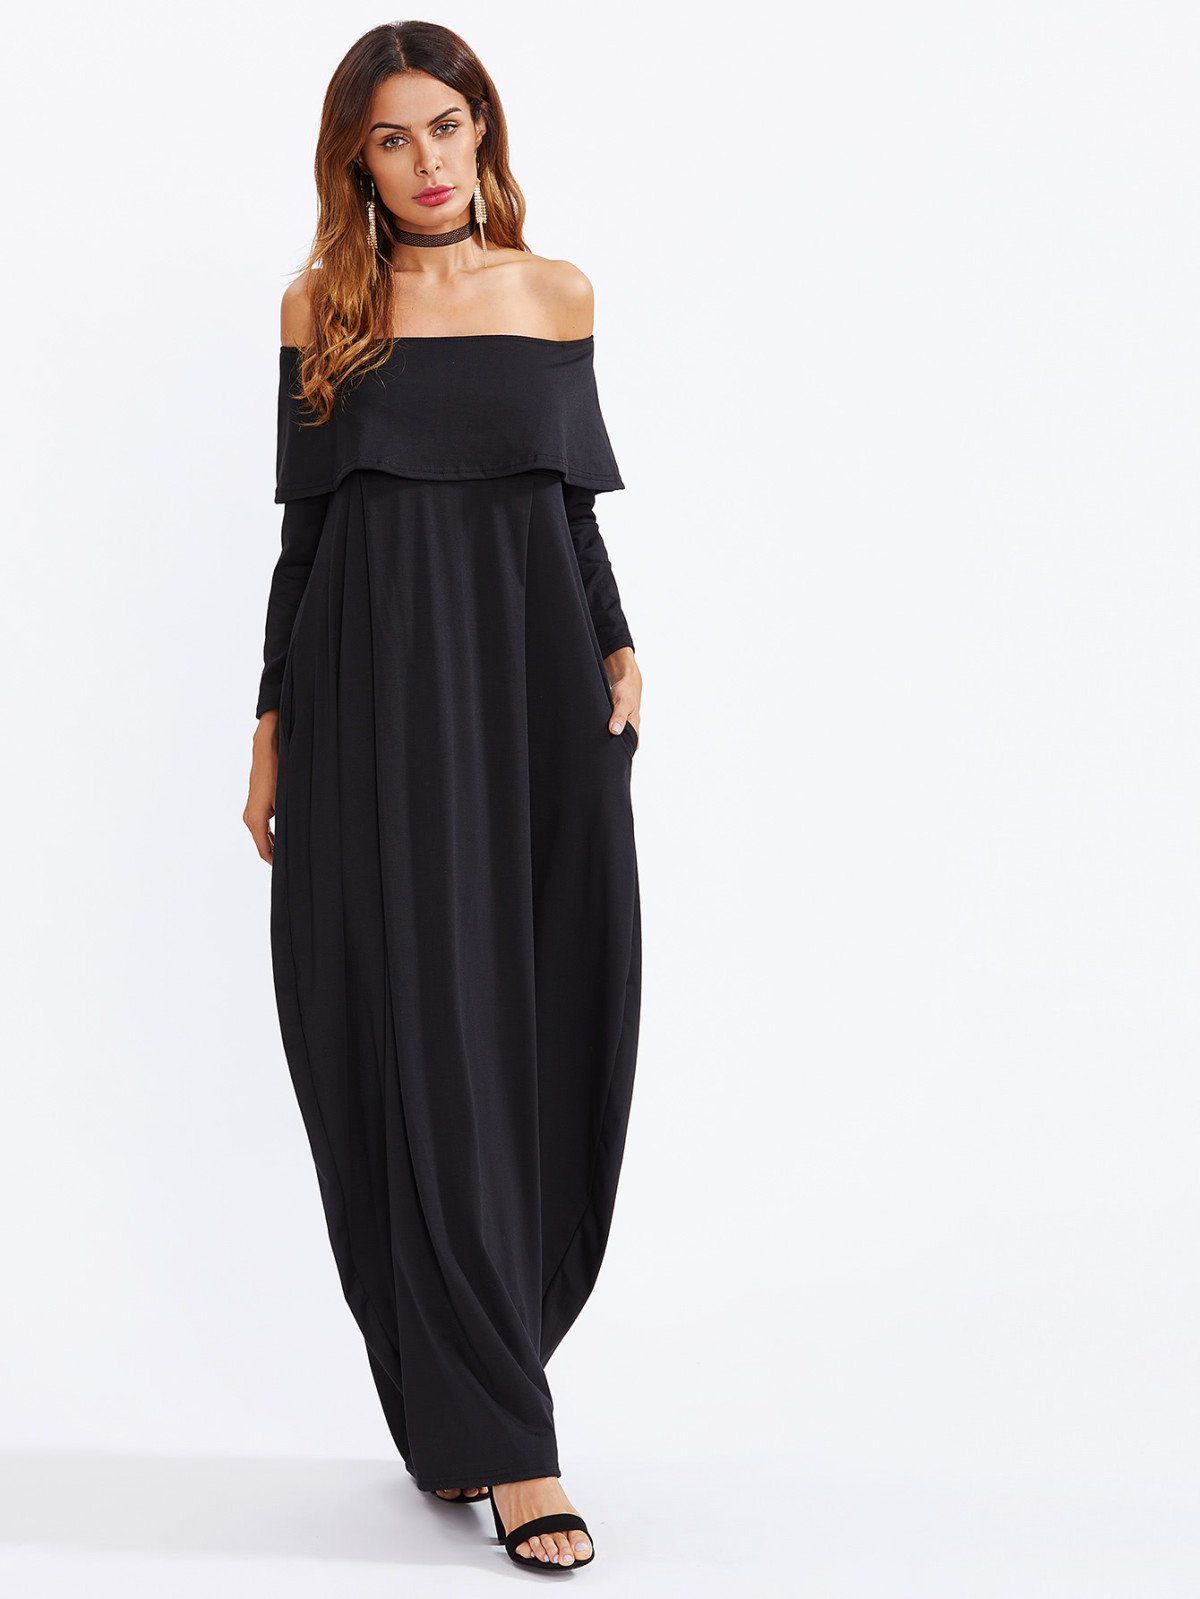 Dresses by borntowear flounce layered neckline cocoon dress